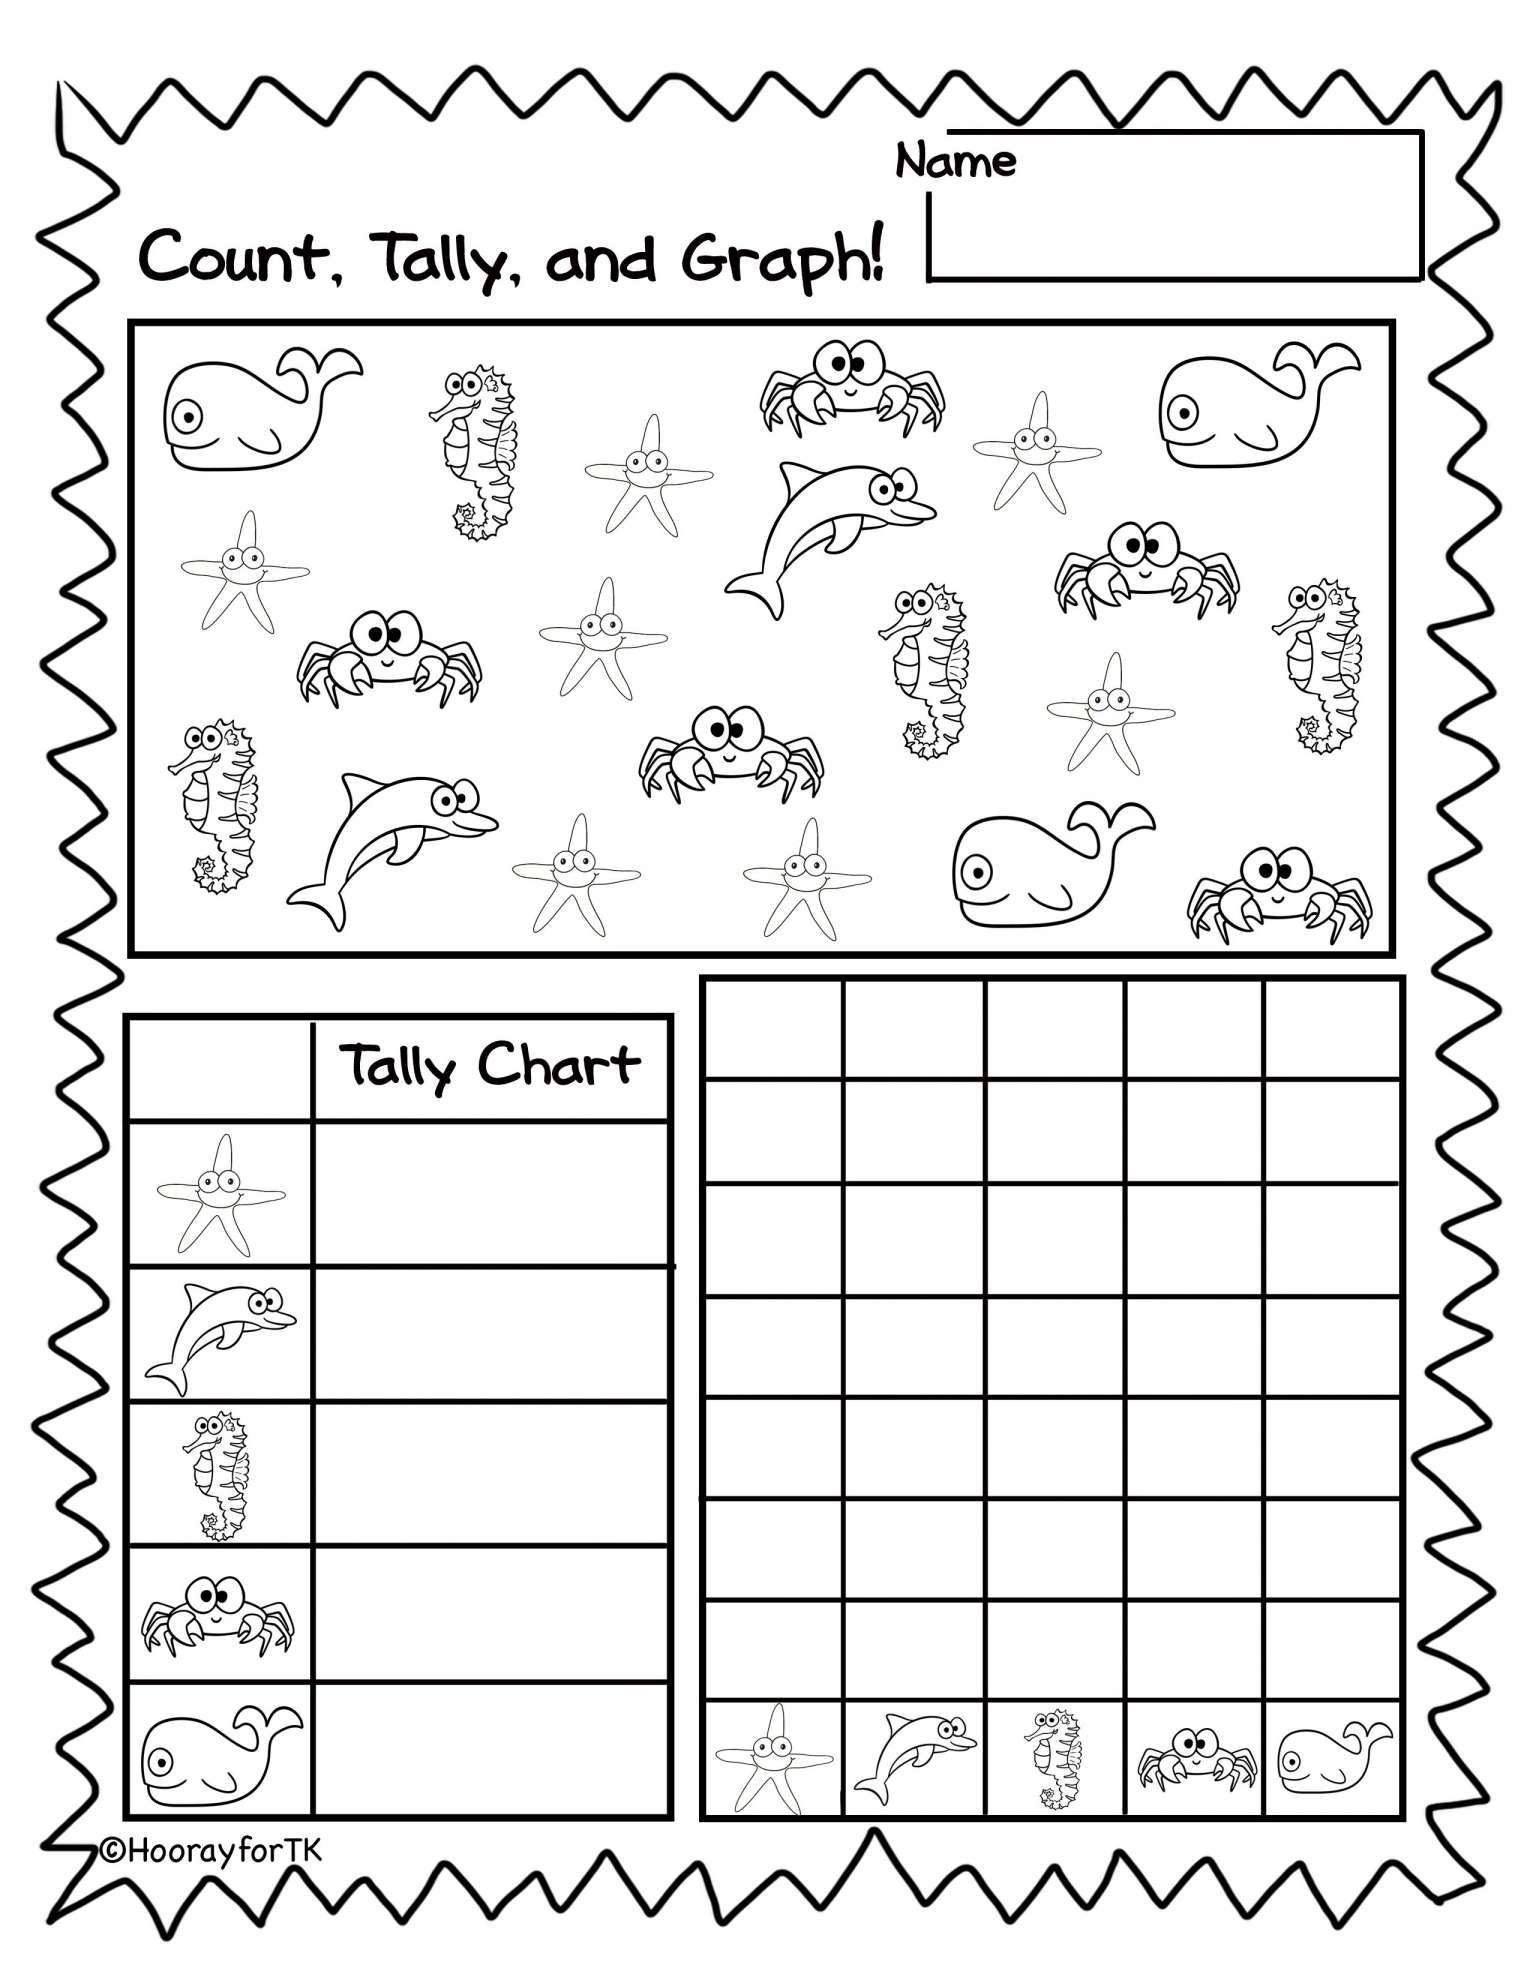 15 Transitional Kindergarten Worksheet In